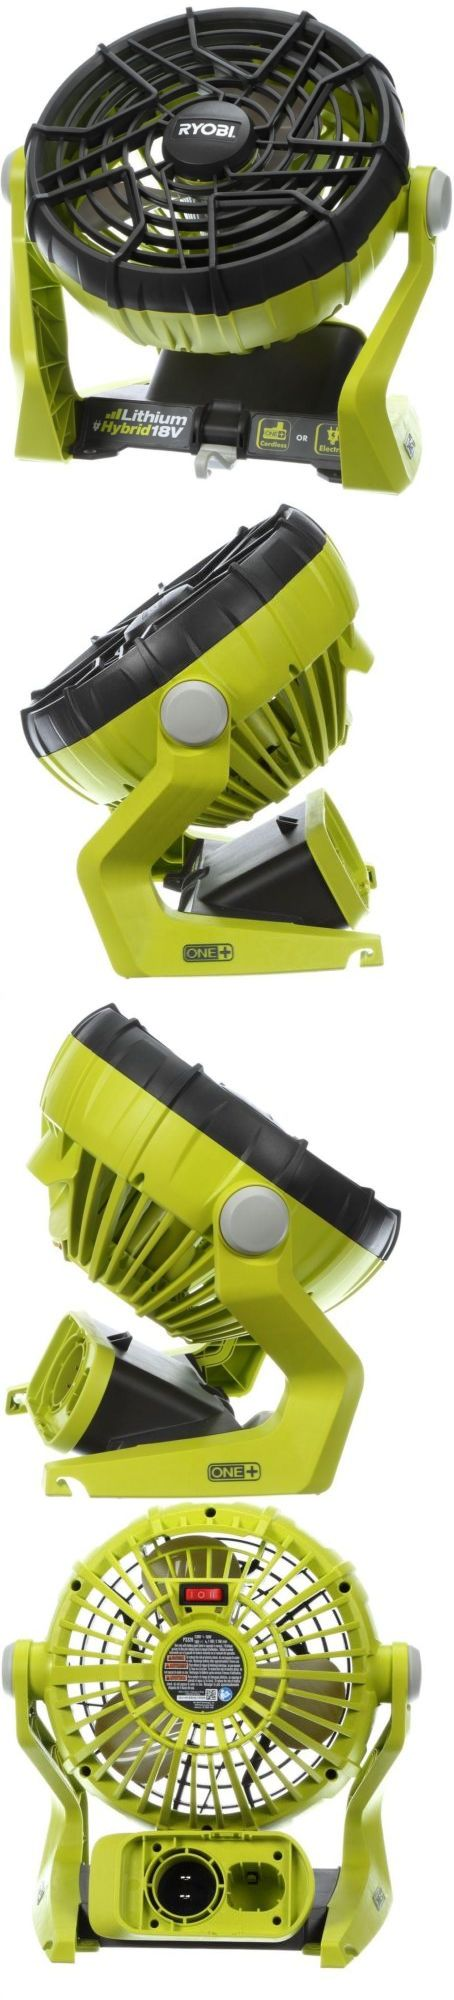 Other Power Tools 632: Ryobi One+ 18-Volt Hybrid Portable Fan Tool Only Electric Cordless Home Cooling -> BUY IT NOW ONLY: $51.16 on eBay!